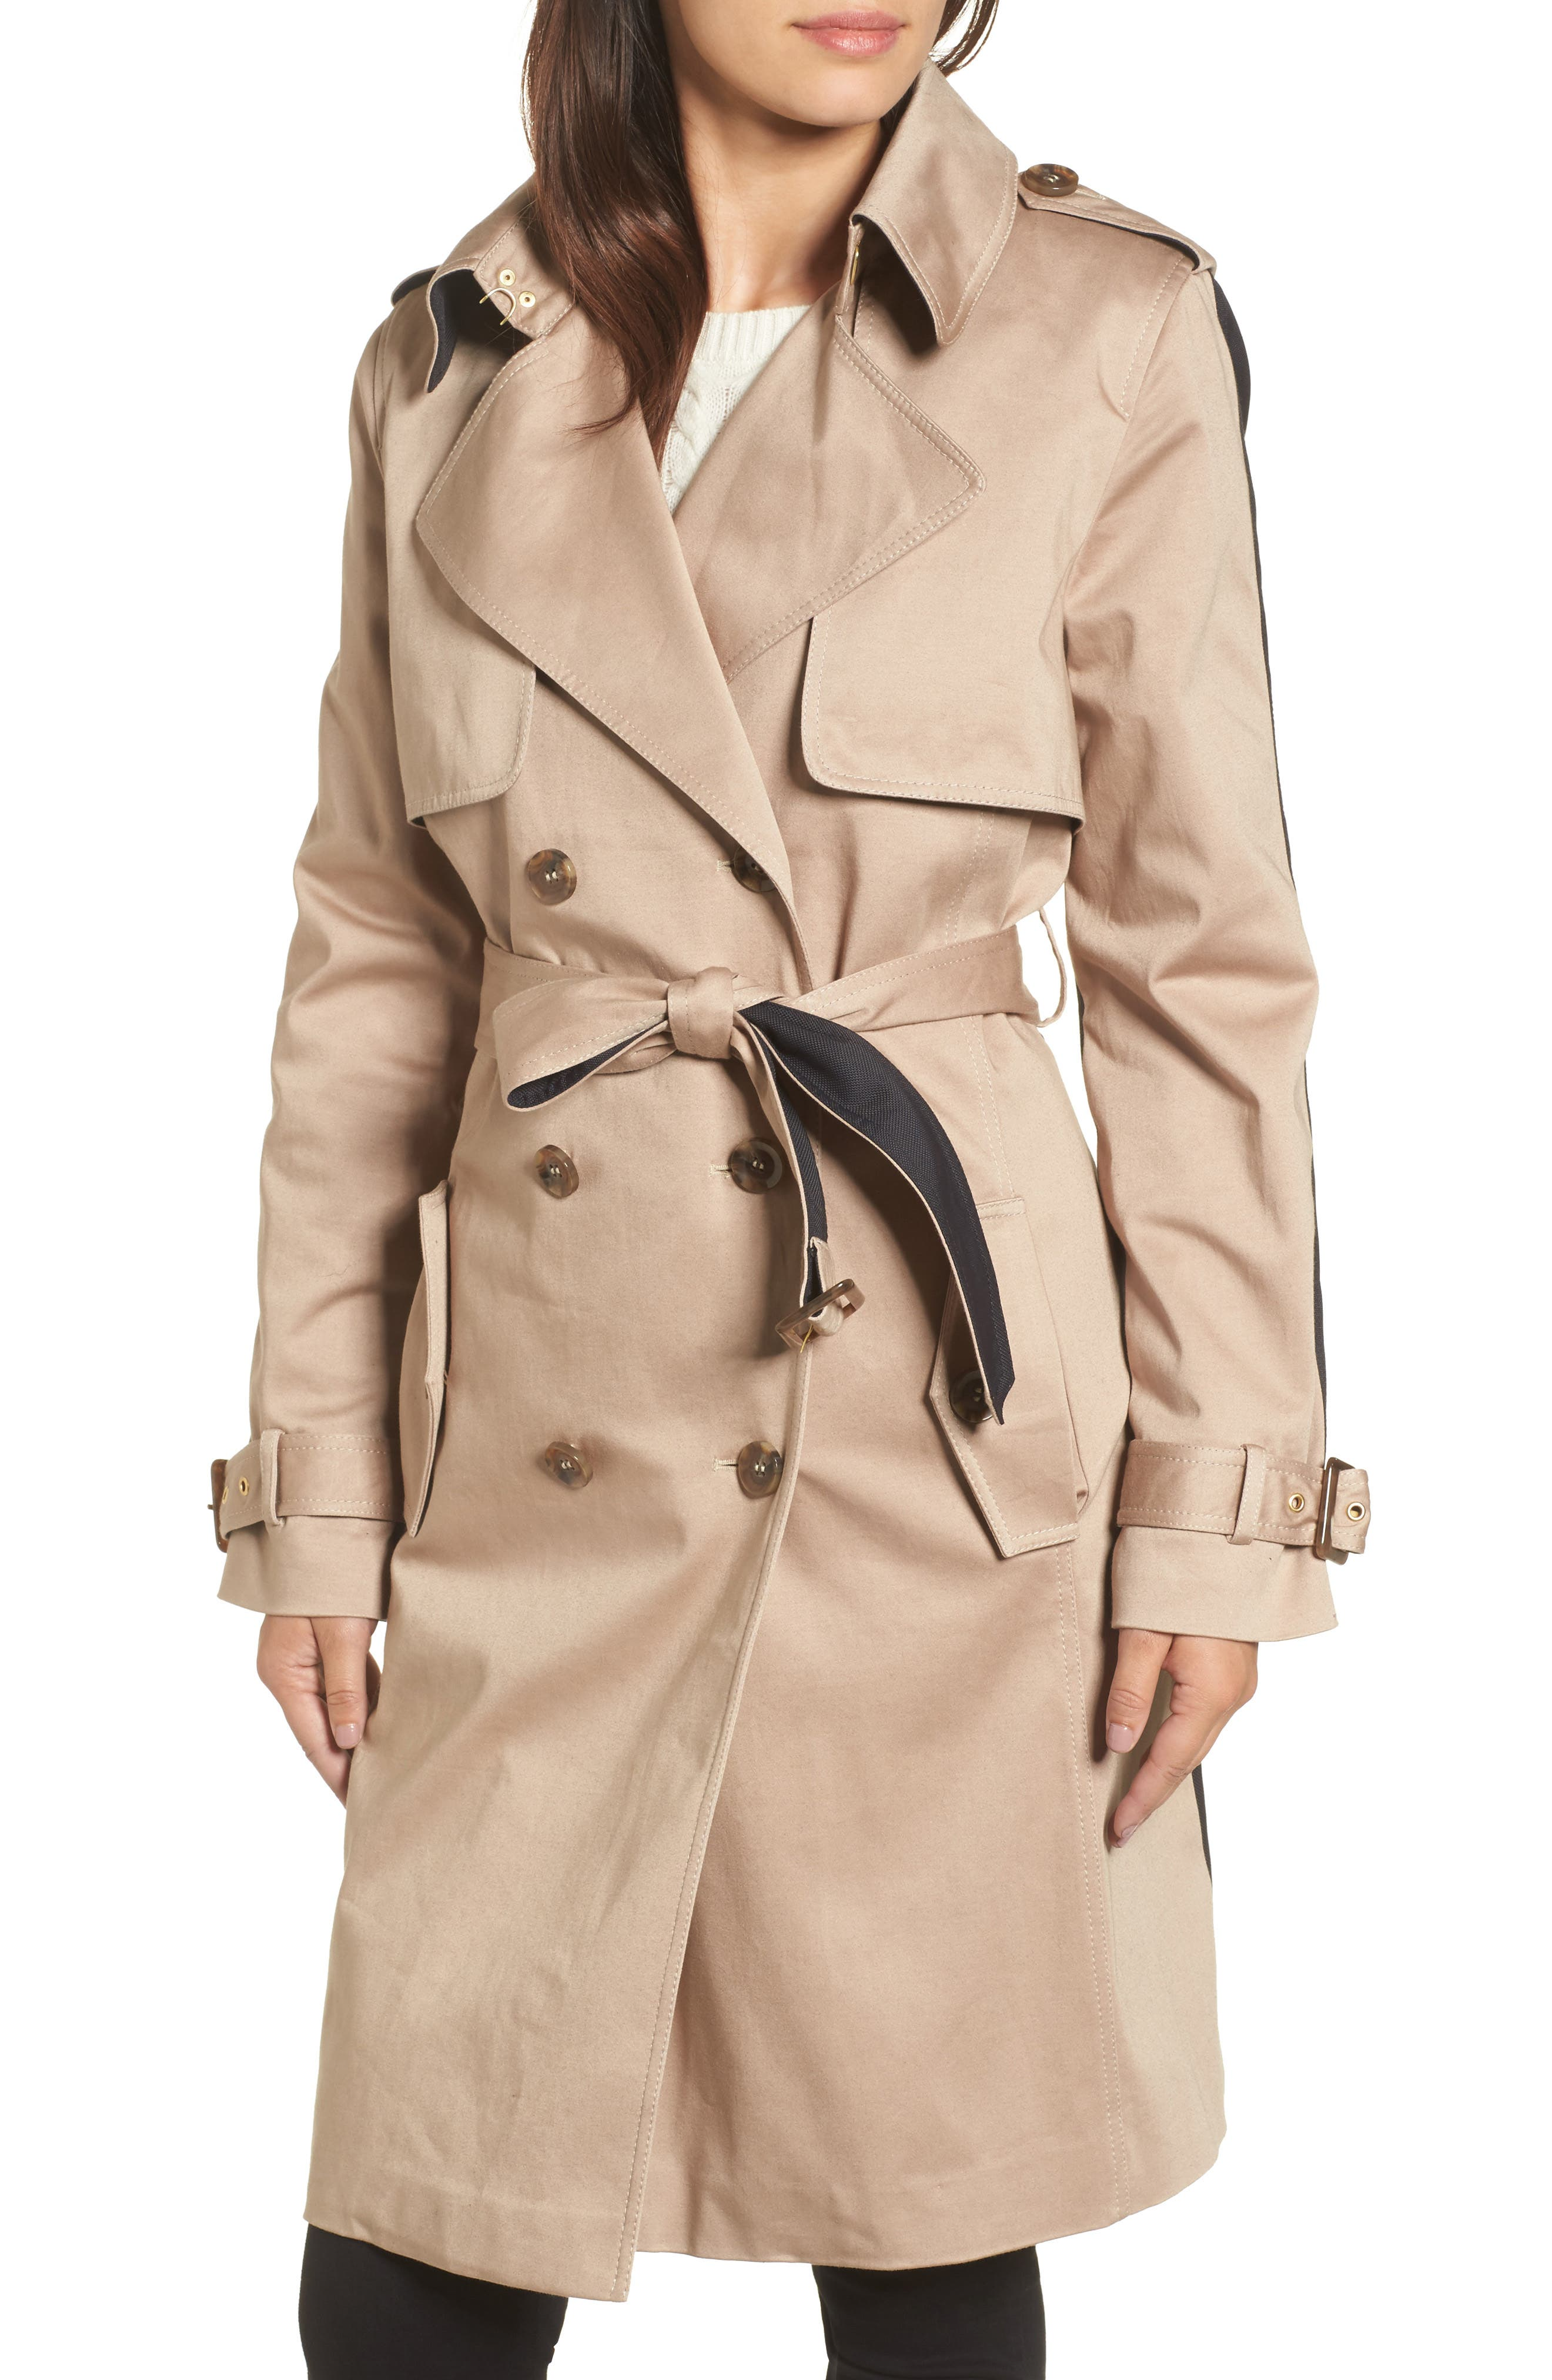 Allison Two-Tone Trench Coat,                             Alternate thumbnail 4, color,                             251